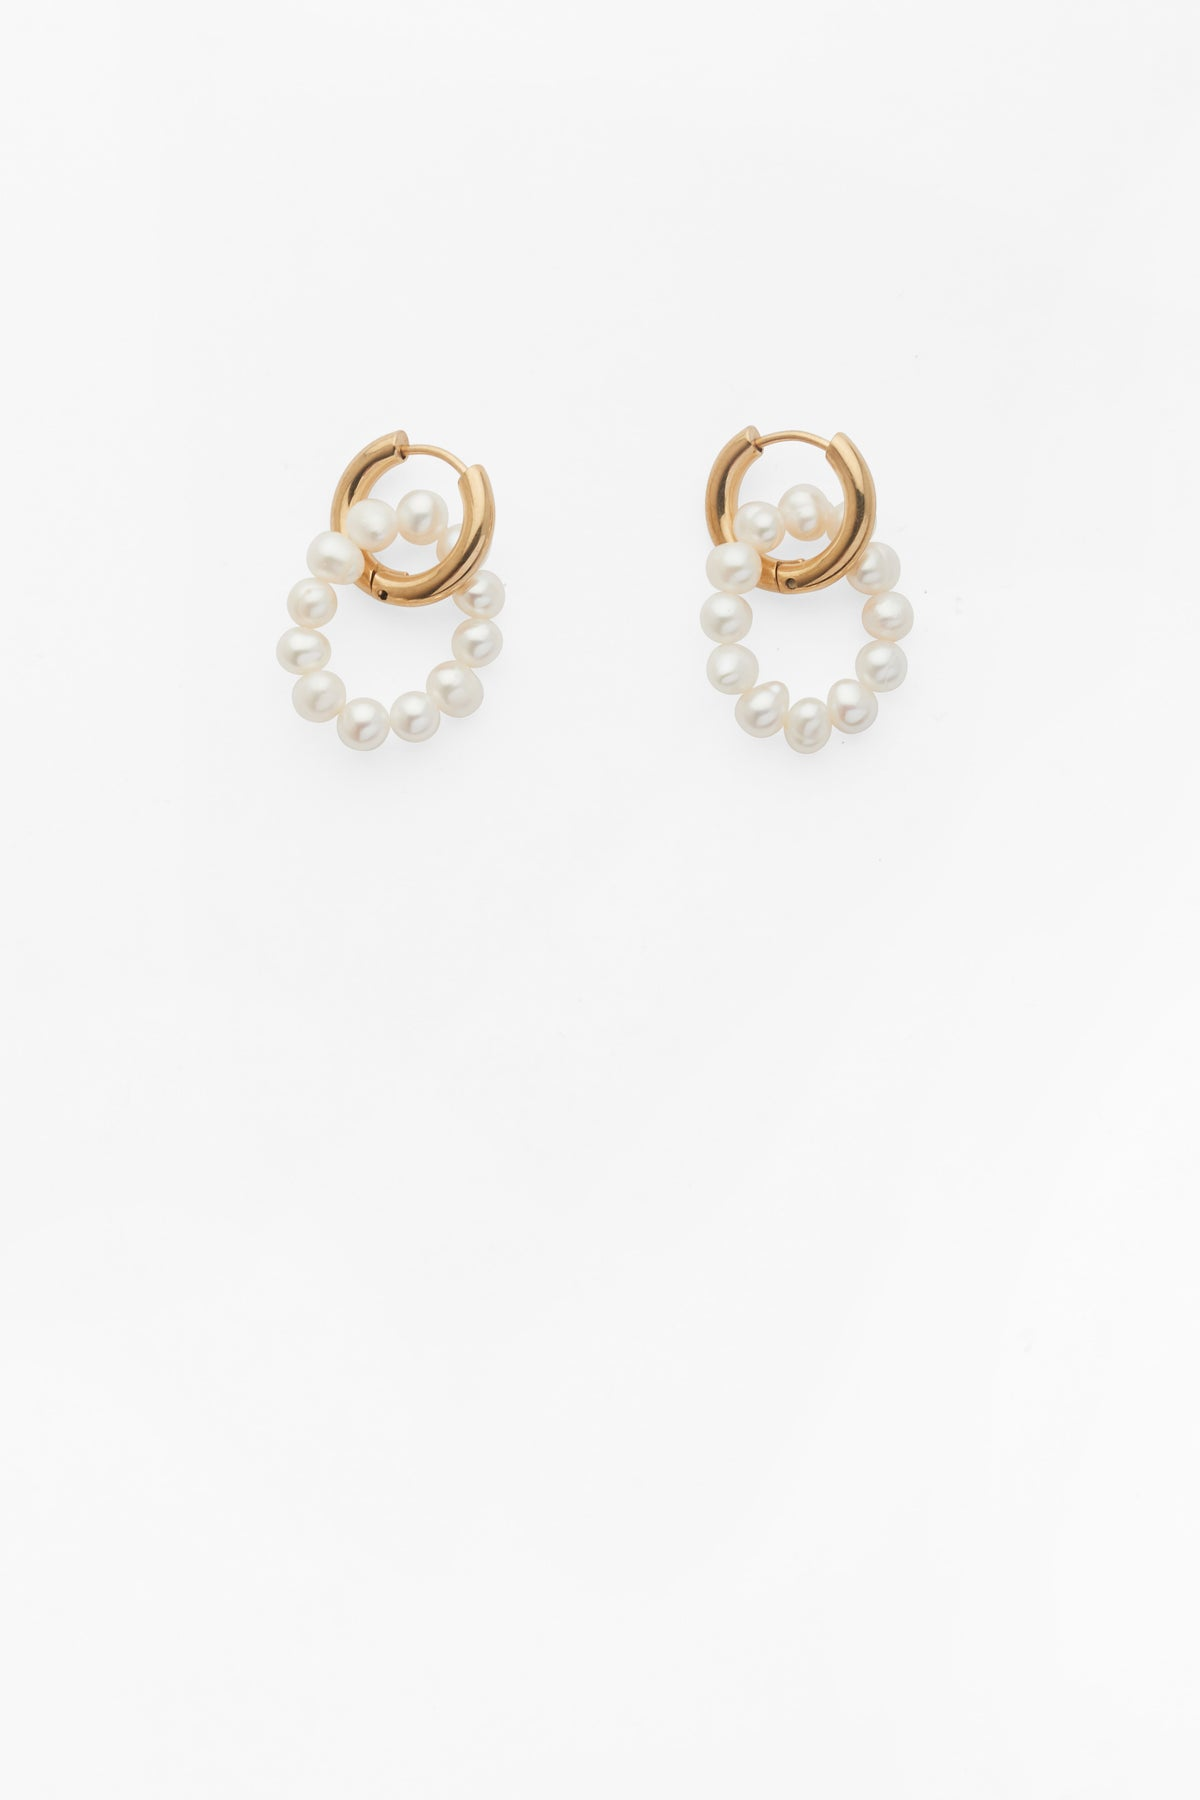 Veronica Pearl Earrings